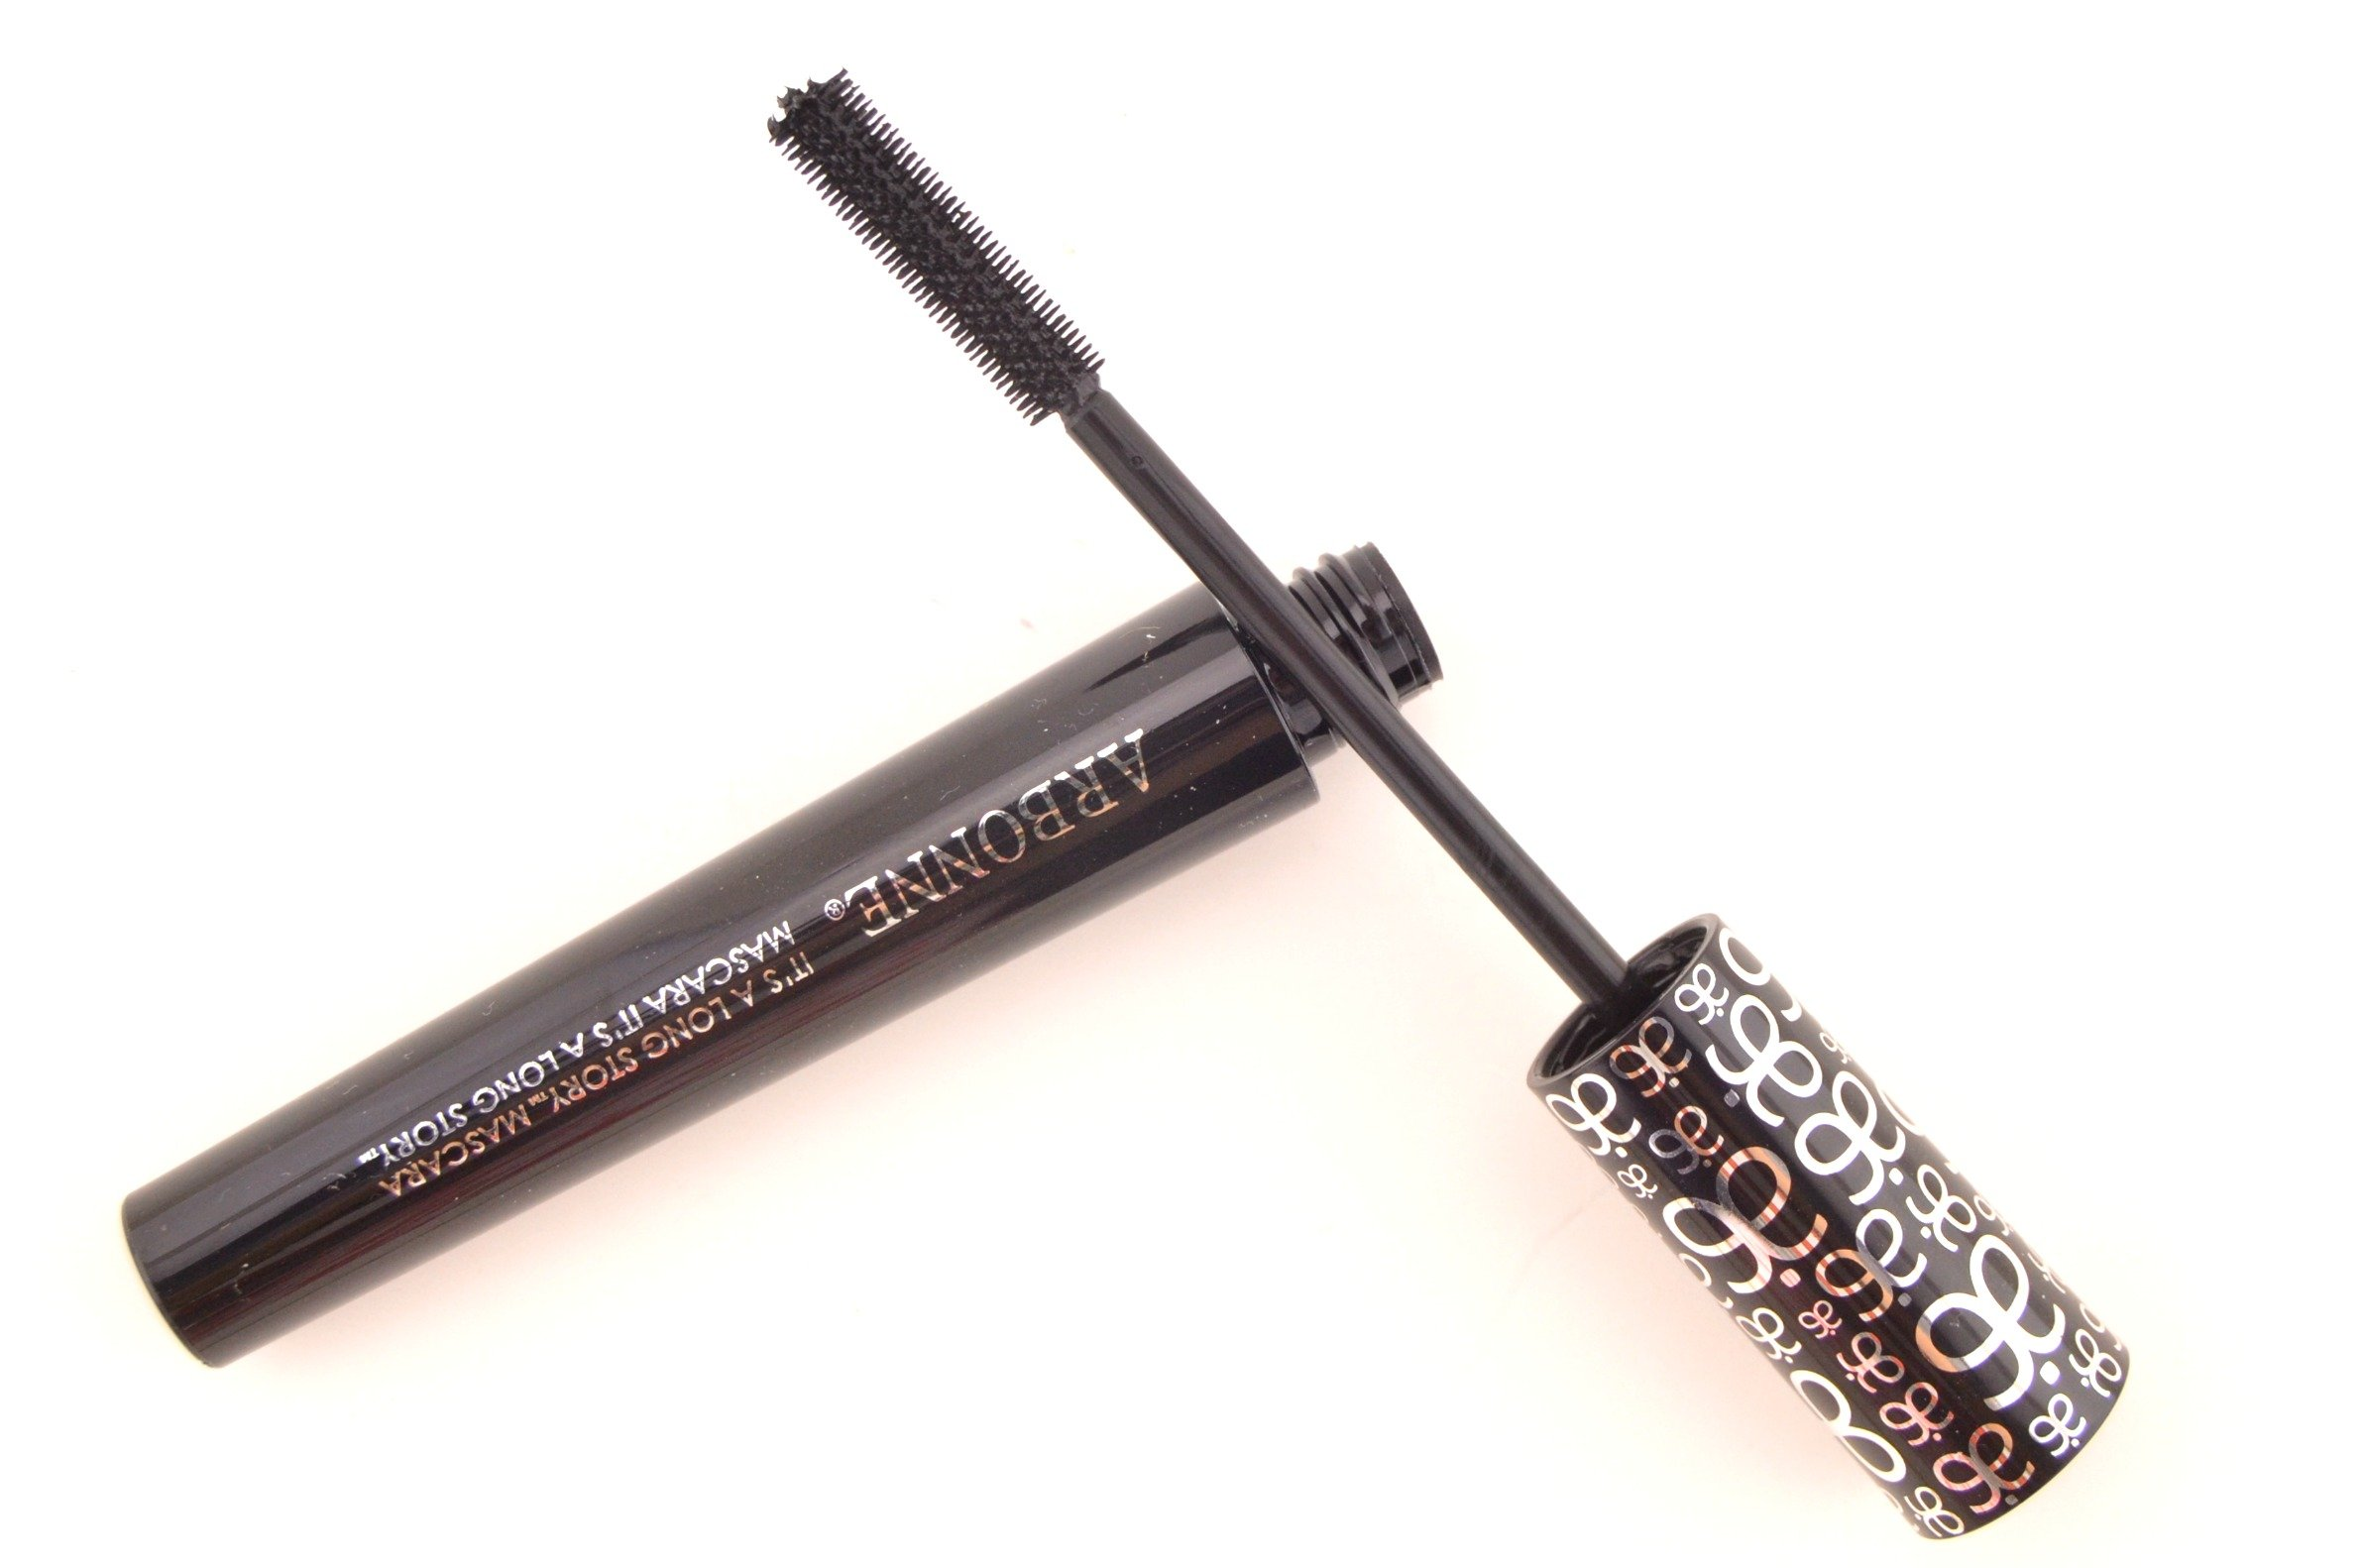 Arbonne - Arbonne It's a Long Story Mascara by Arbonne